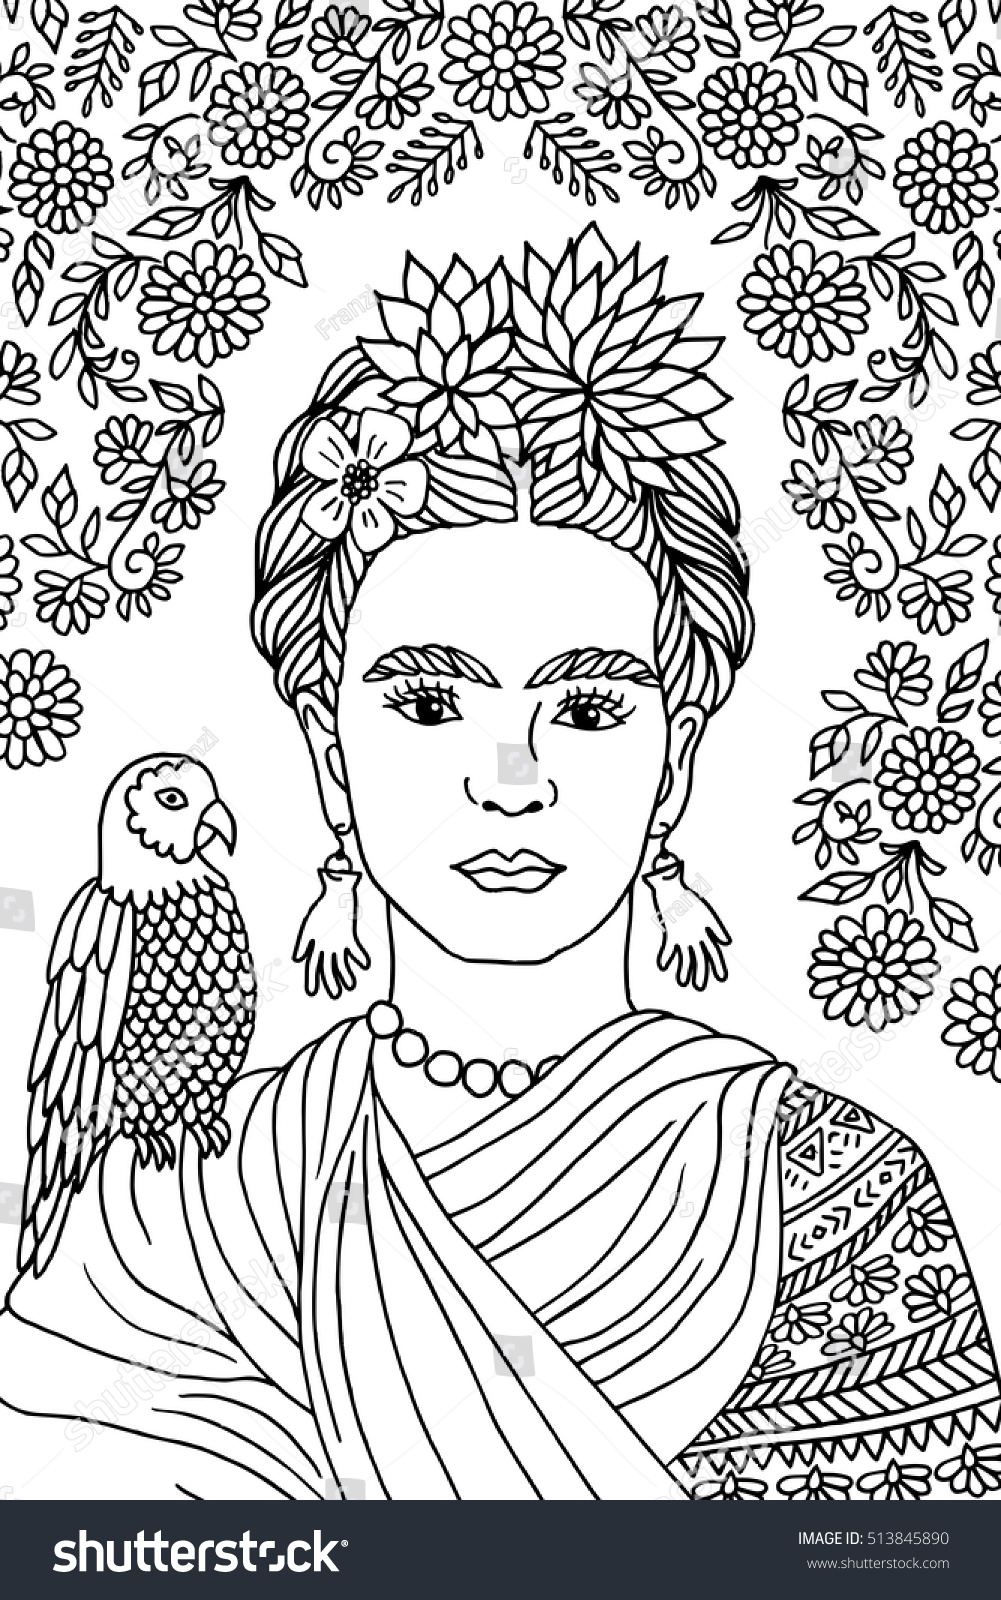 Hand Drawn Portrait Frida Kahlo Floral Stock Vector Royalty Free